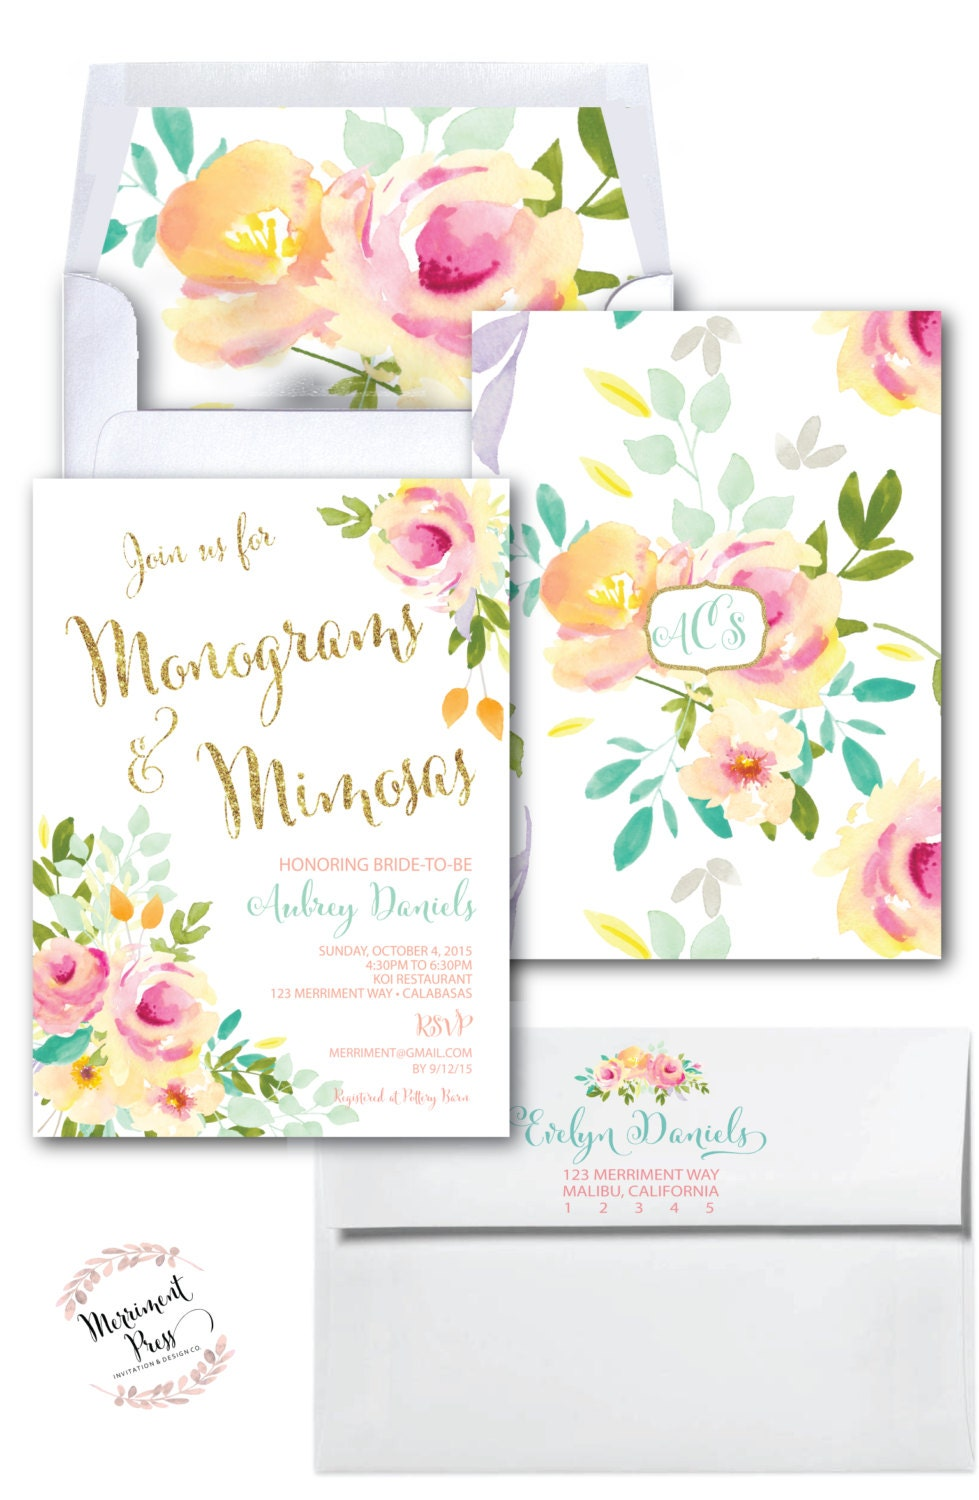 aa396a6f2027 Monograms and Mimosas Invitation  Watercolor   Roses  Peonies ...